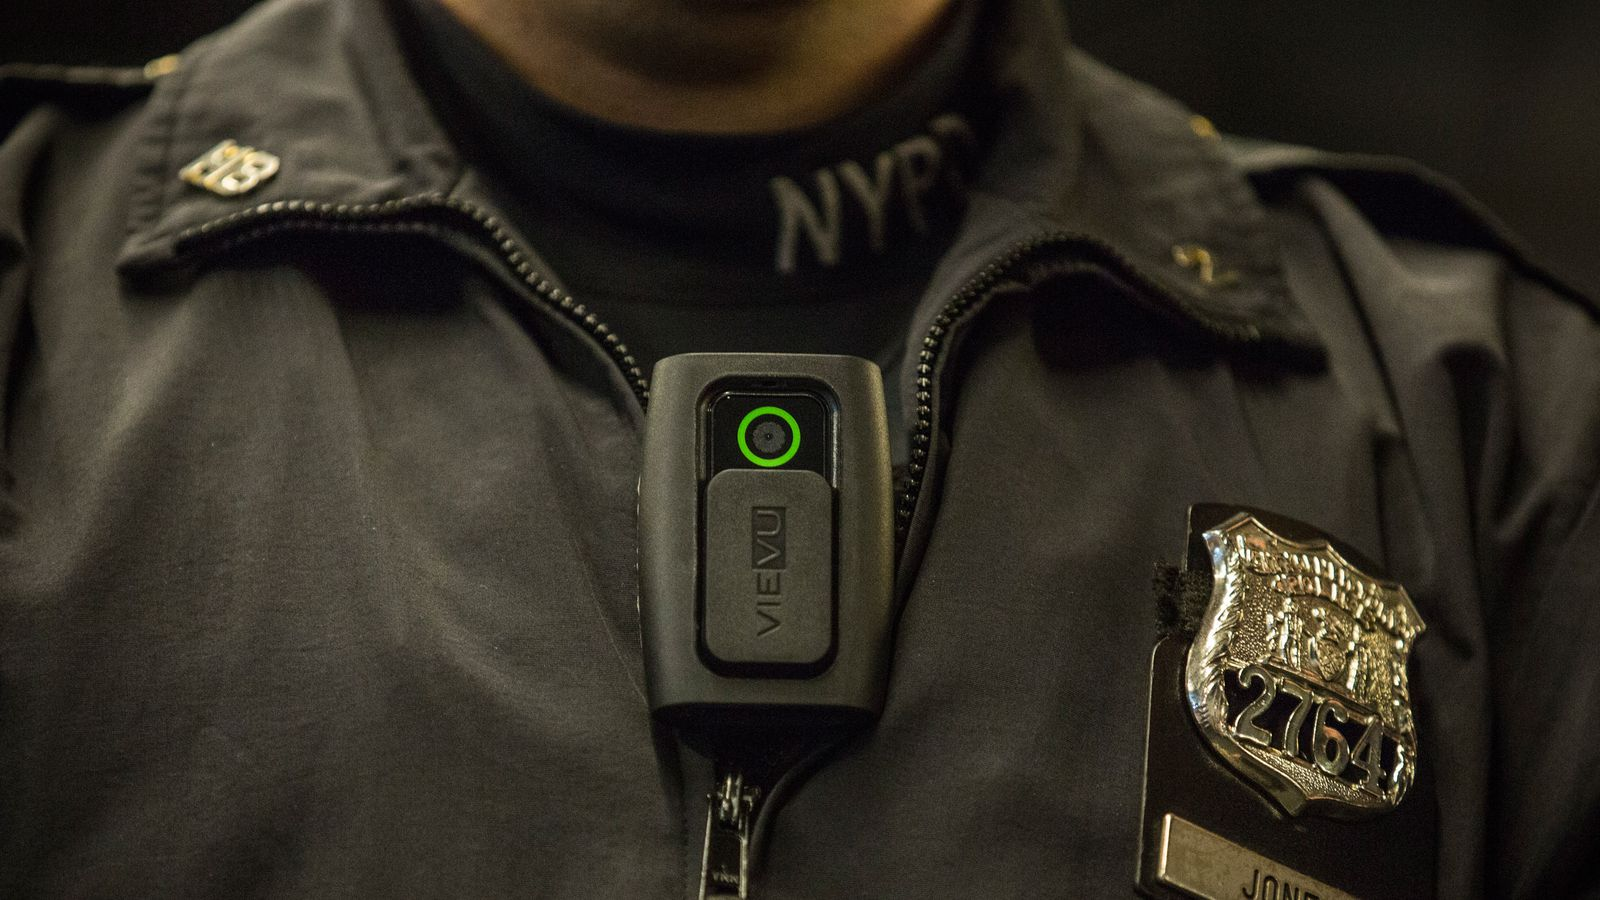 New York City has released its proposal to outfit police officers with body cameras